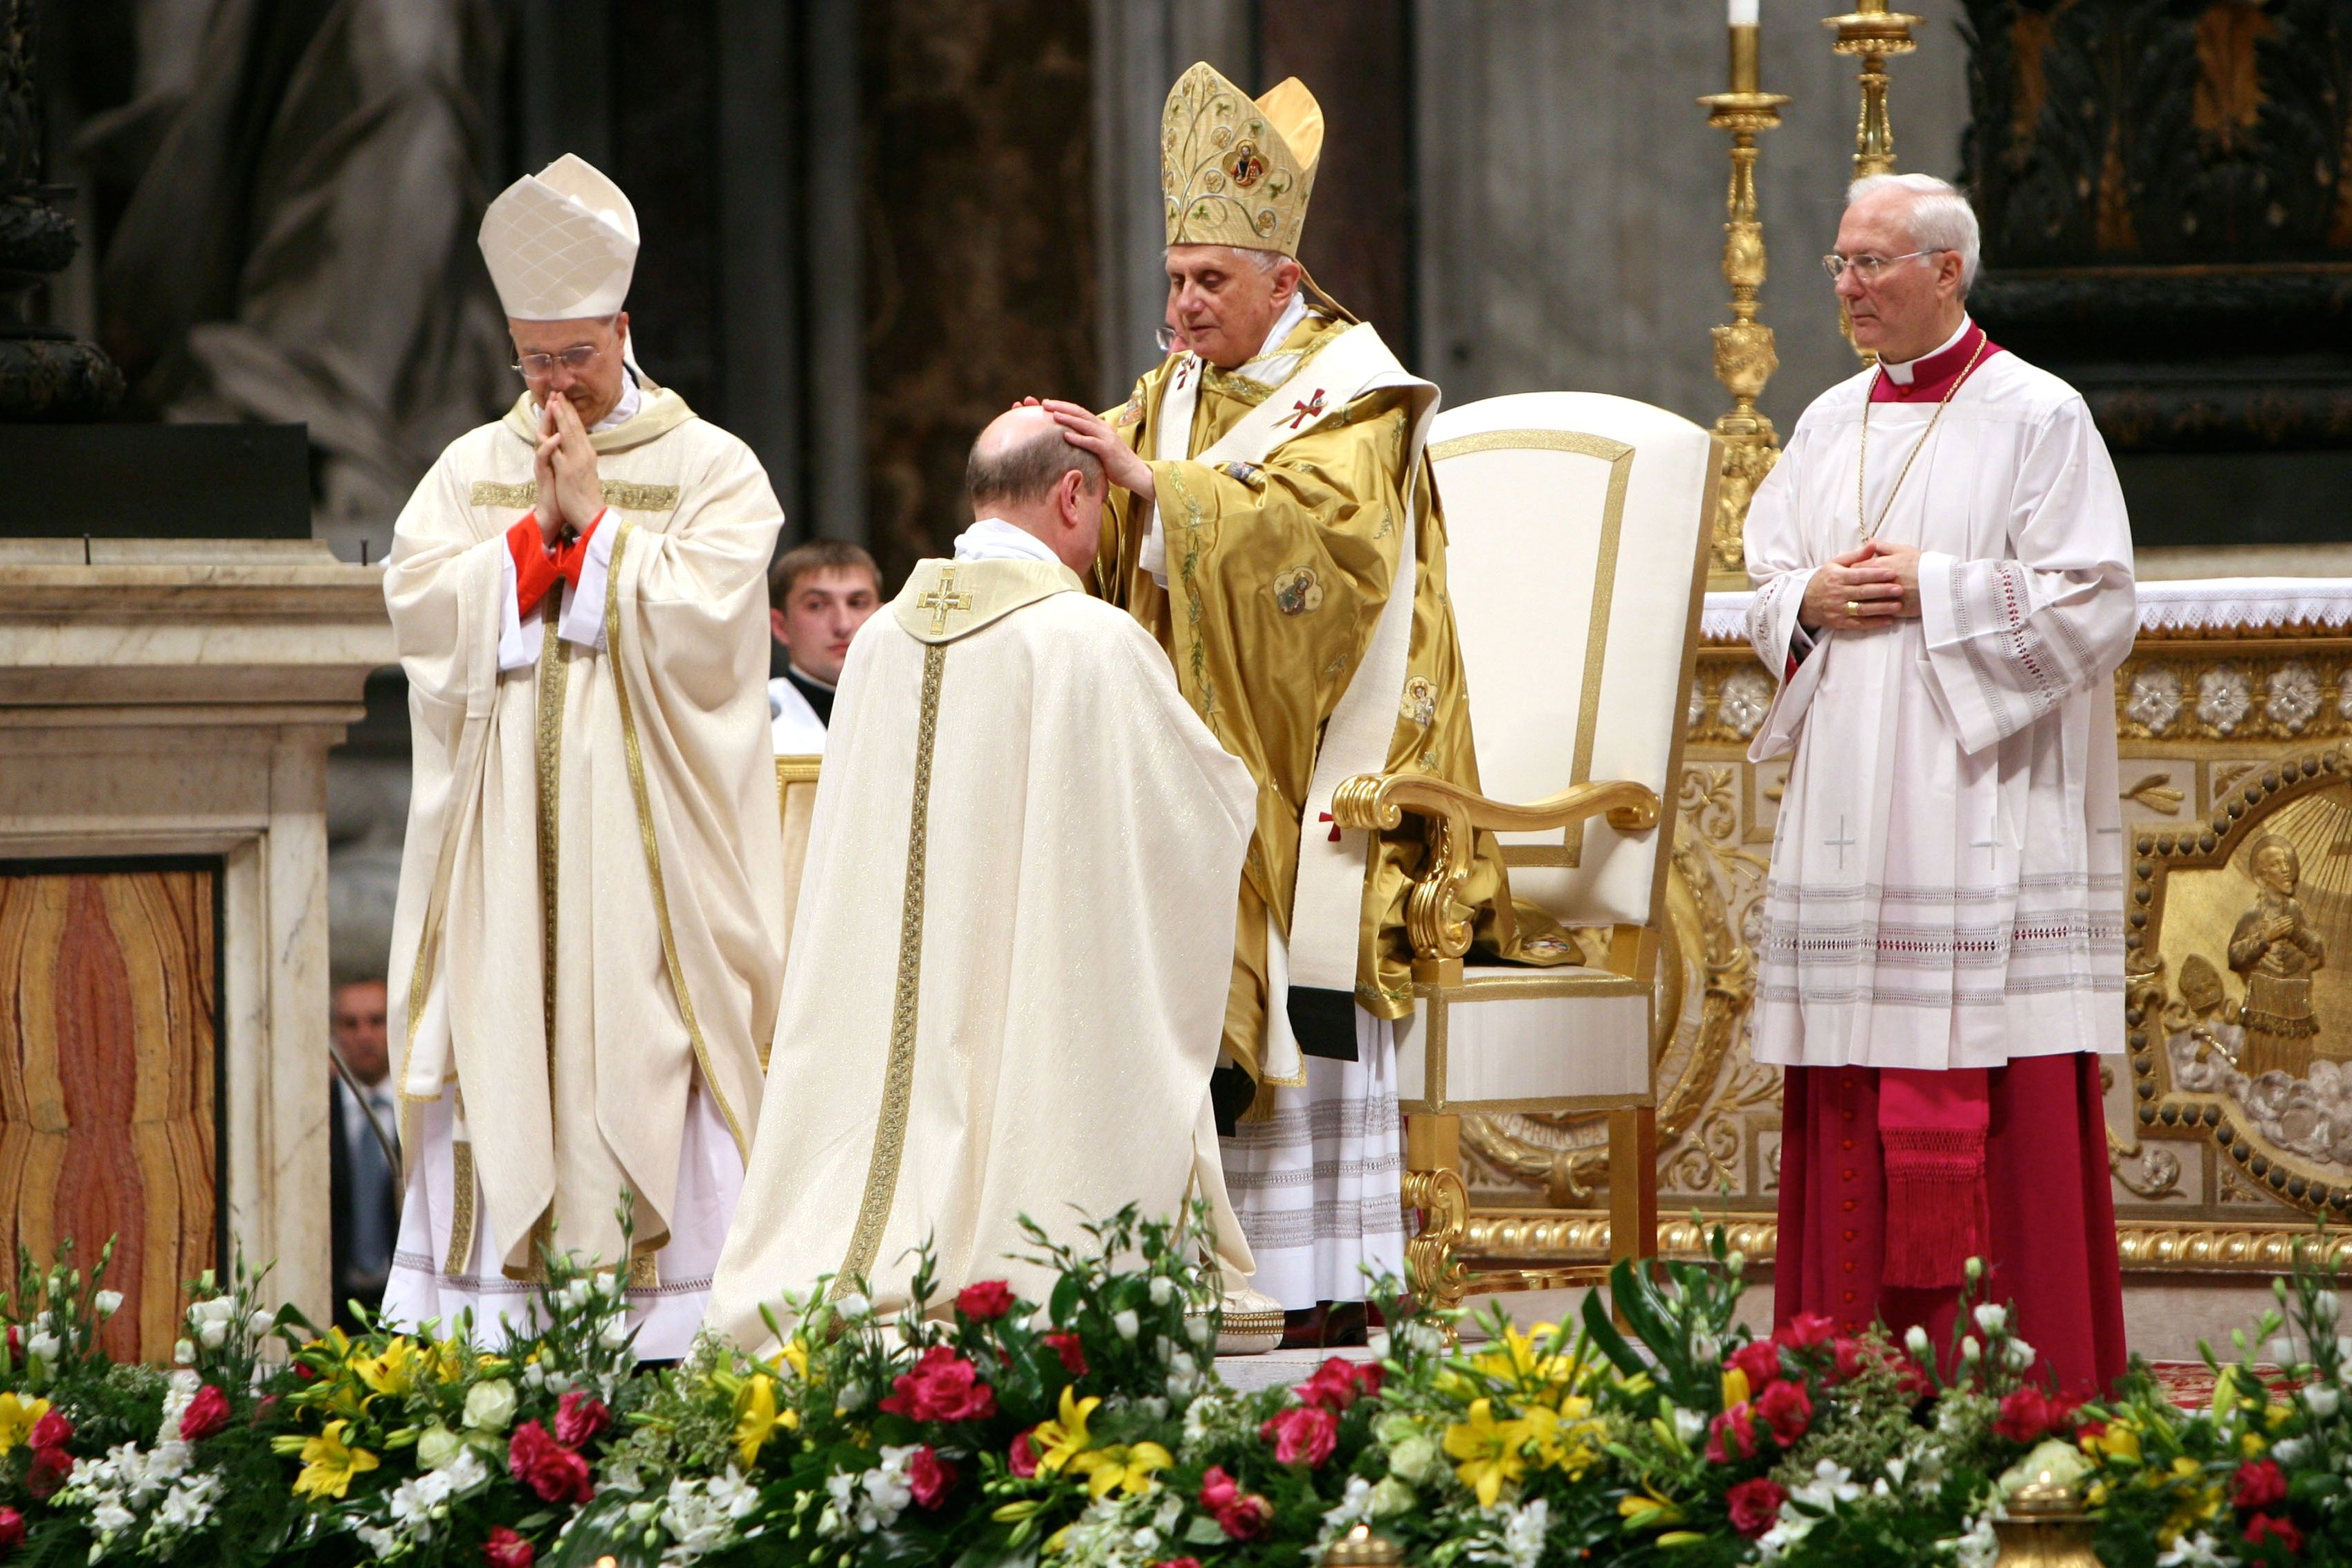 The Sacrament Of Holy Orders In The Catholic Church